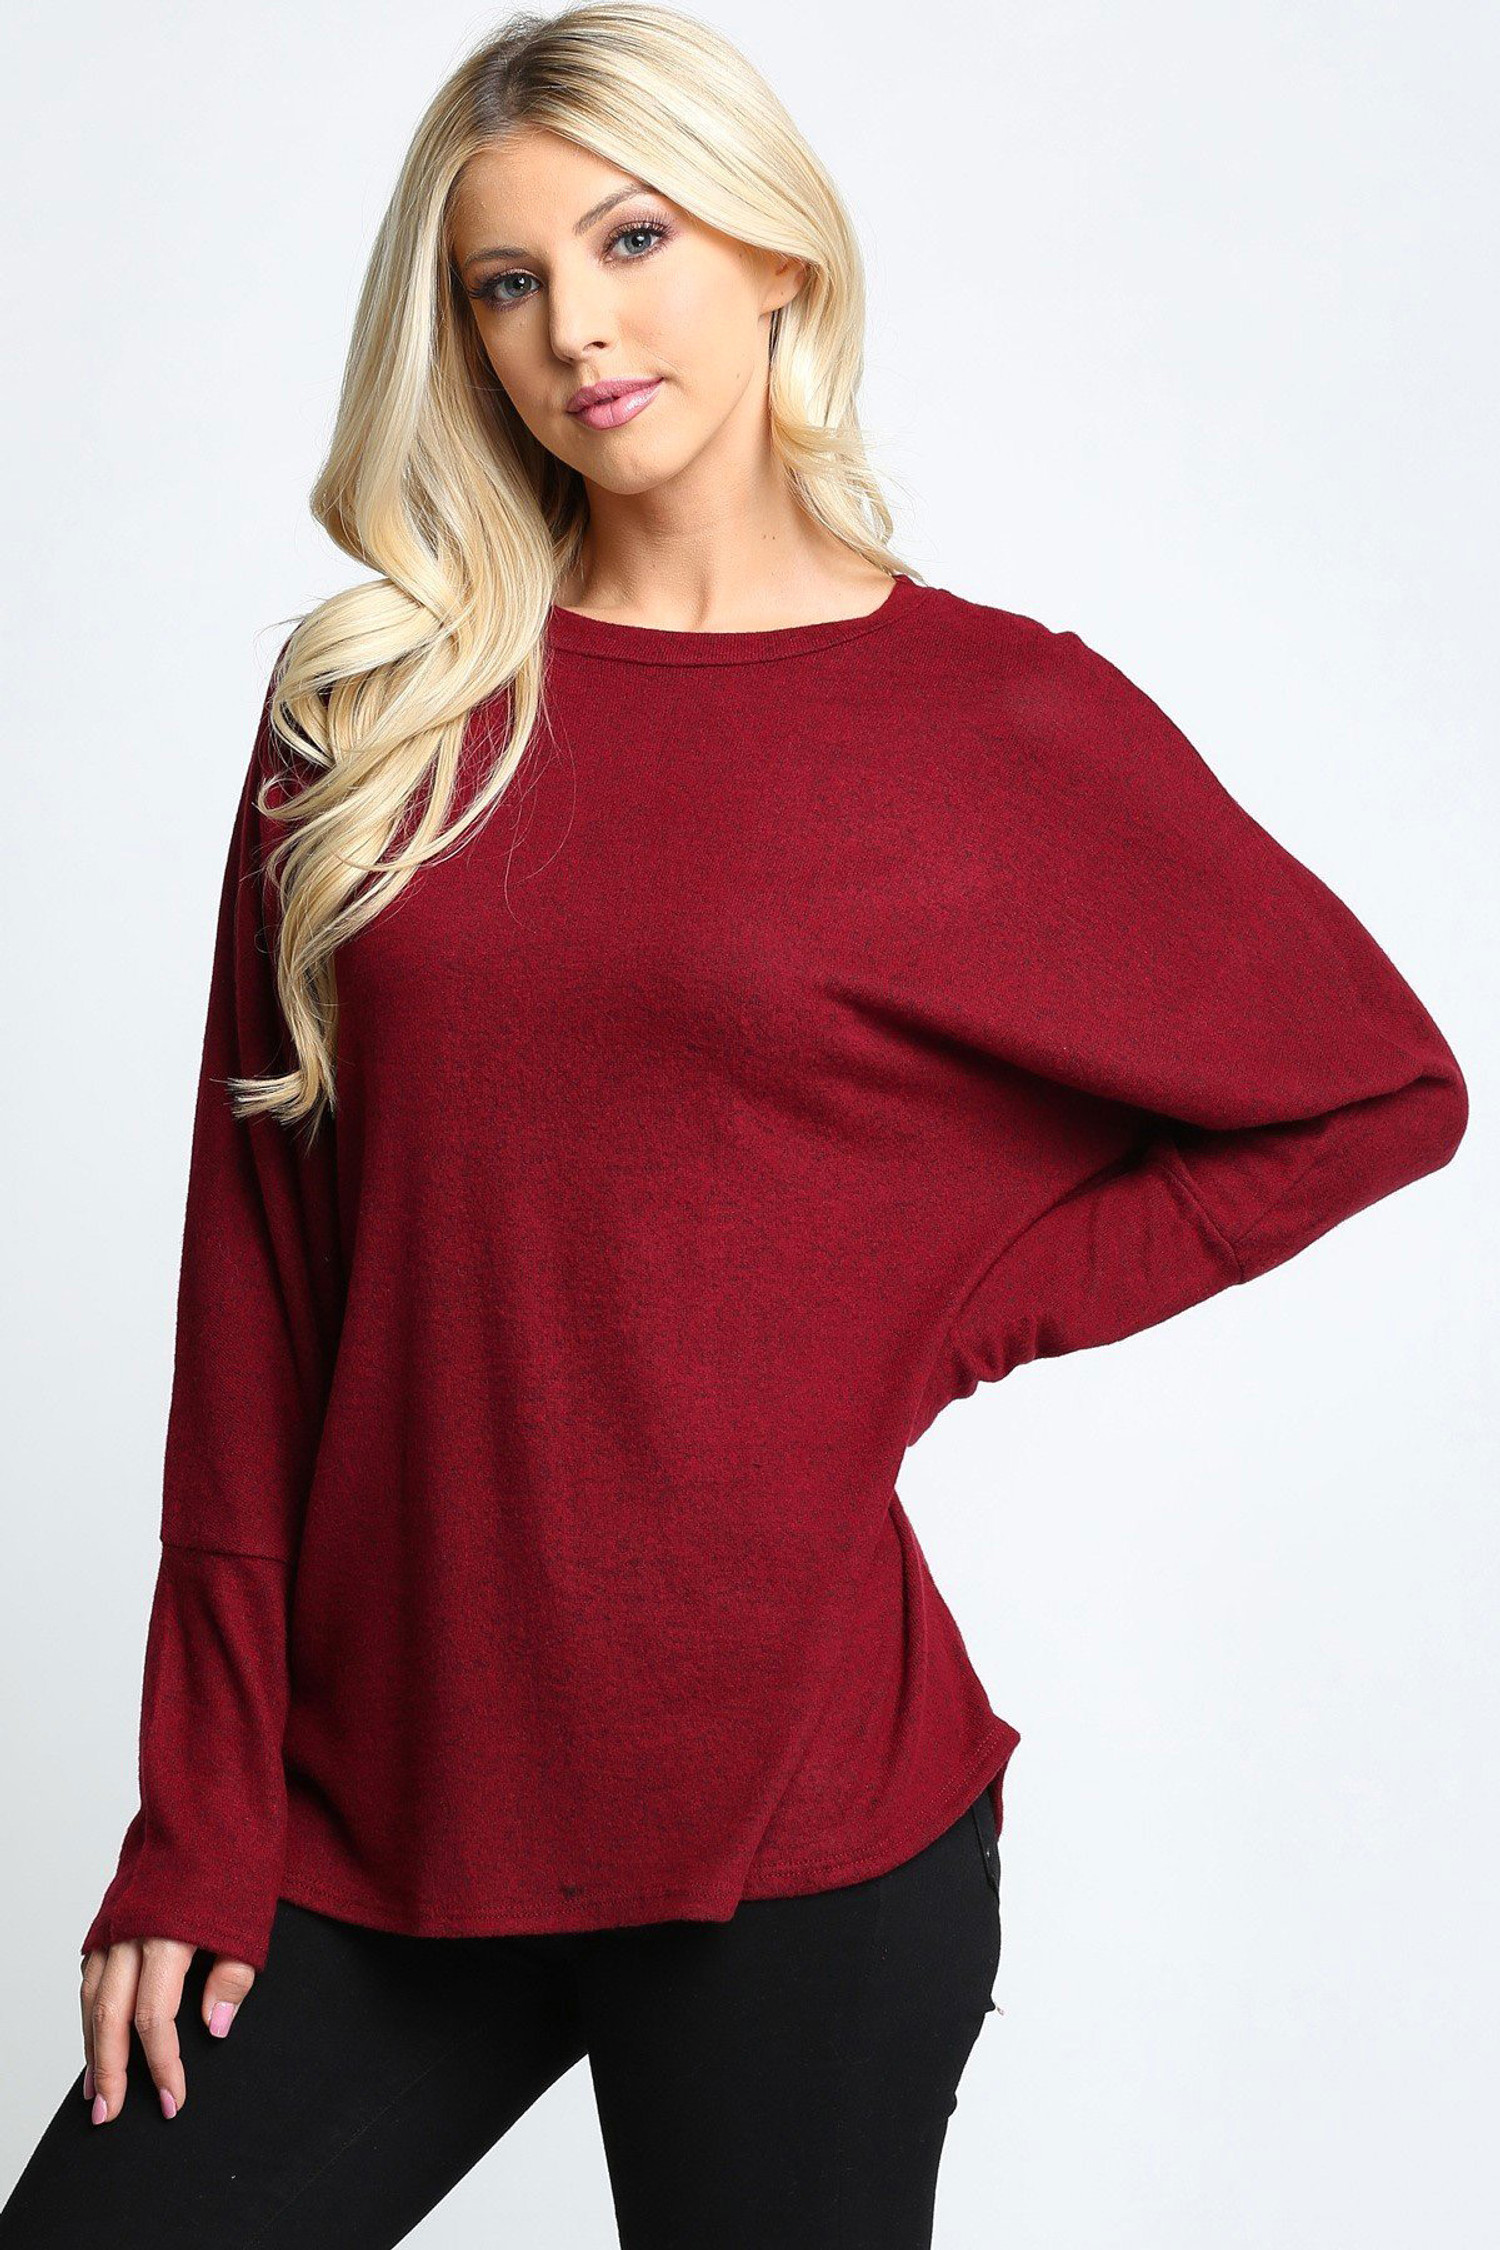 Burgundy Solid Long Sleeve Dolman Plus Size Top